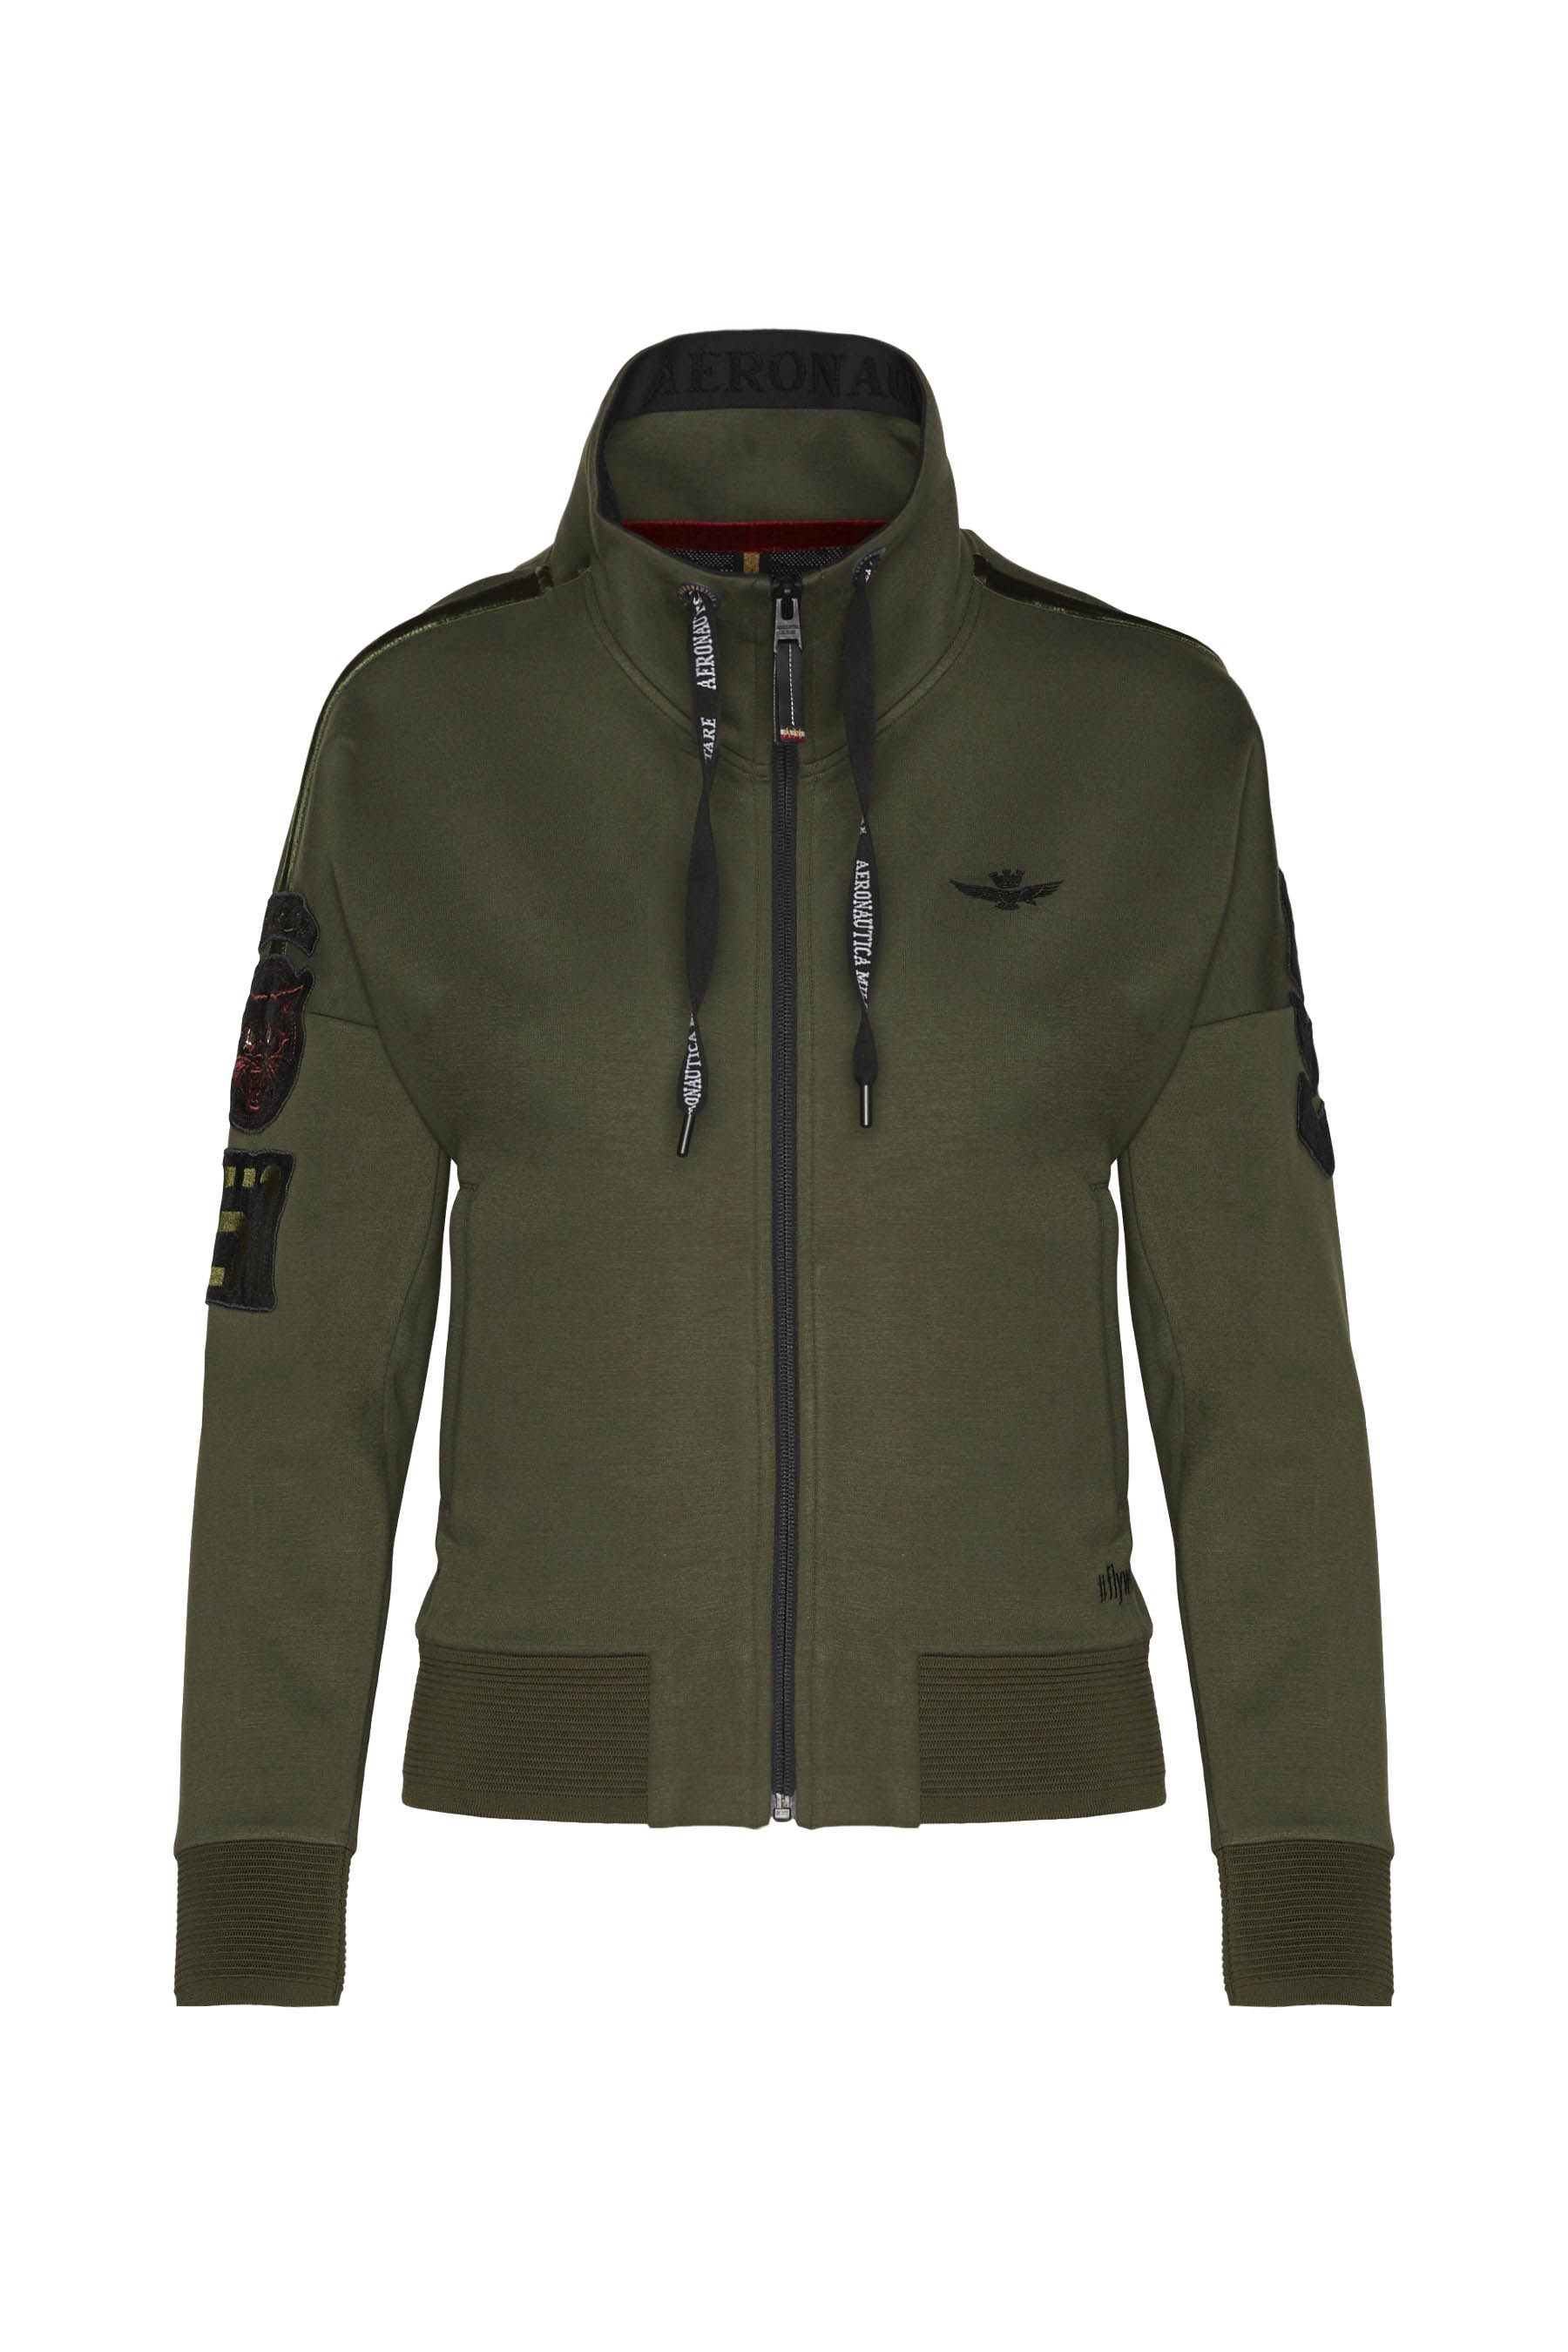 FE1552 - FELPA FULL ZIP